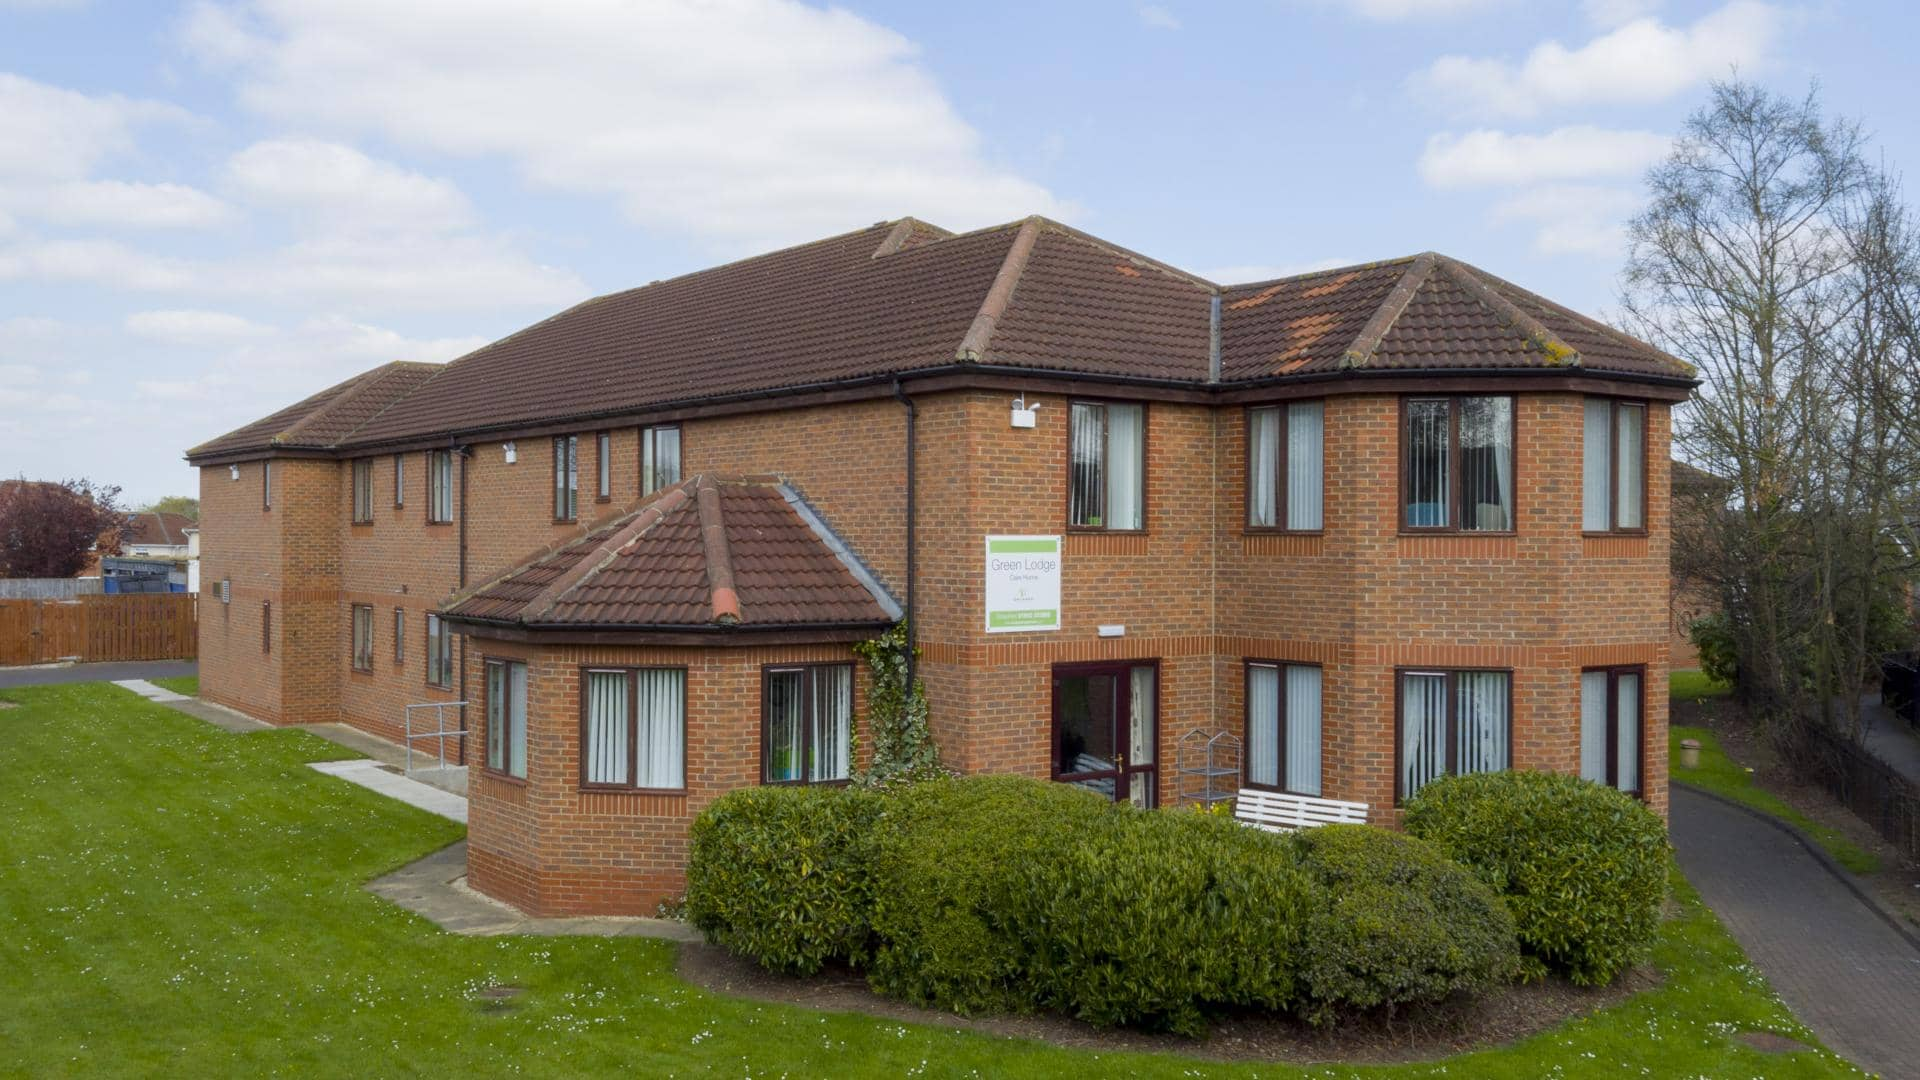 Care Home in Billingham